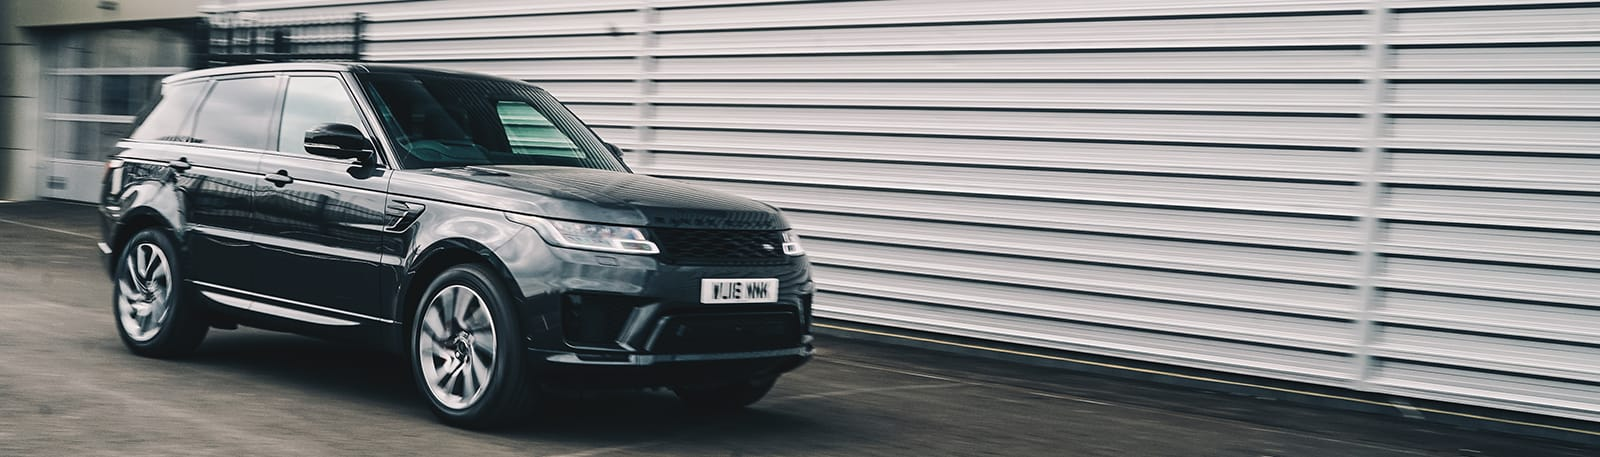 What's It Like To Drive The New Range Rover Sport?